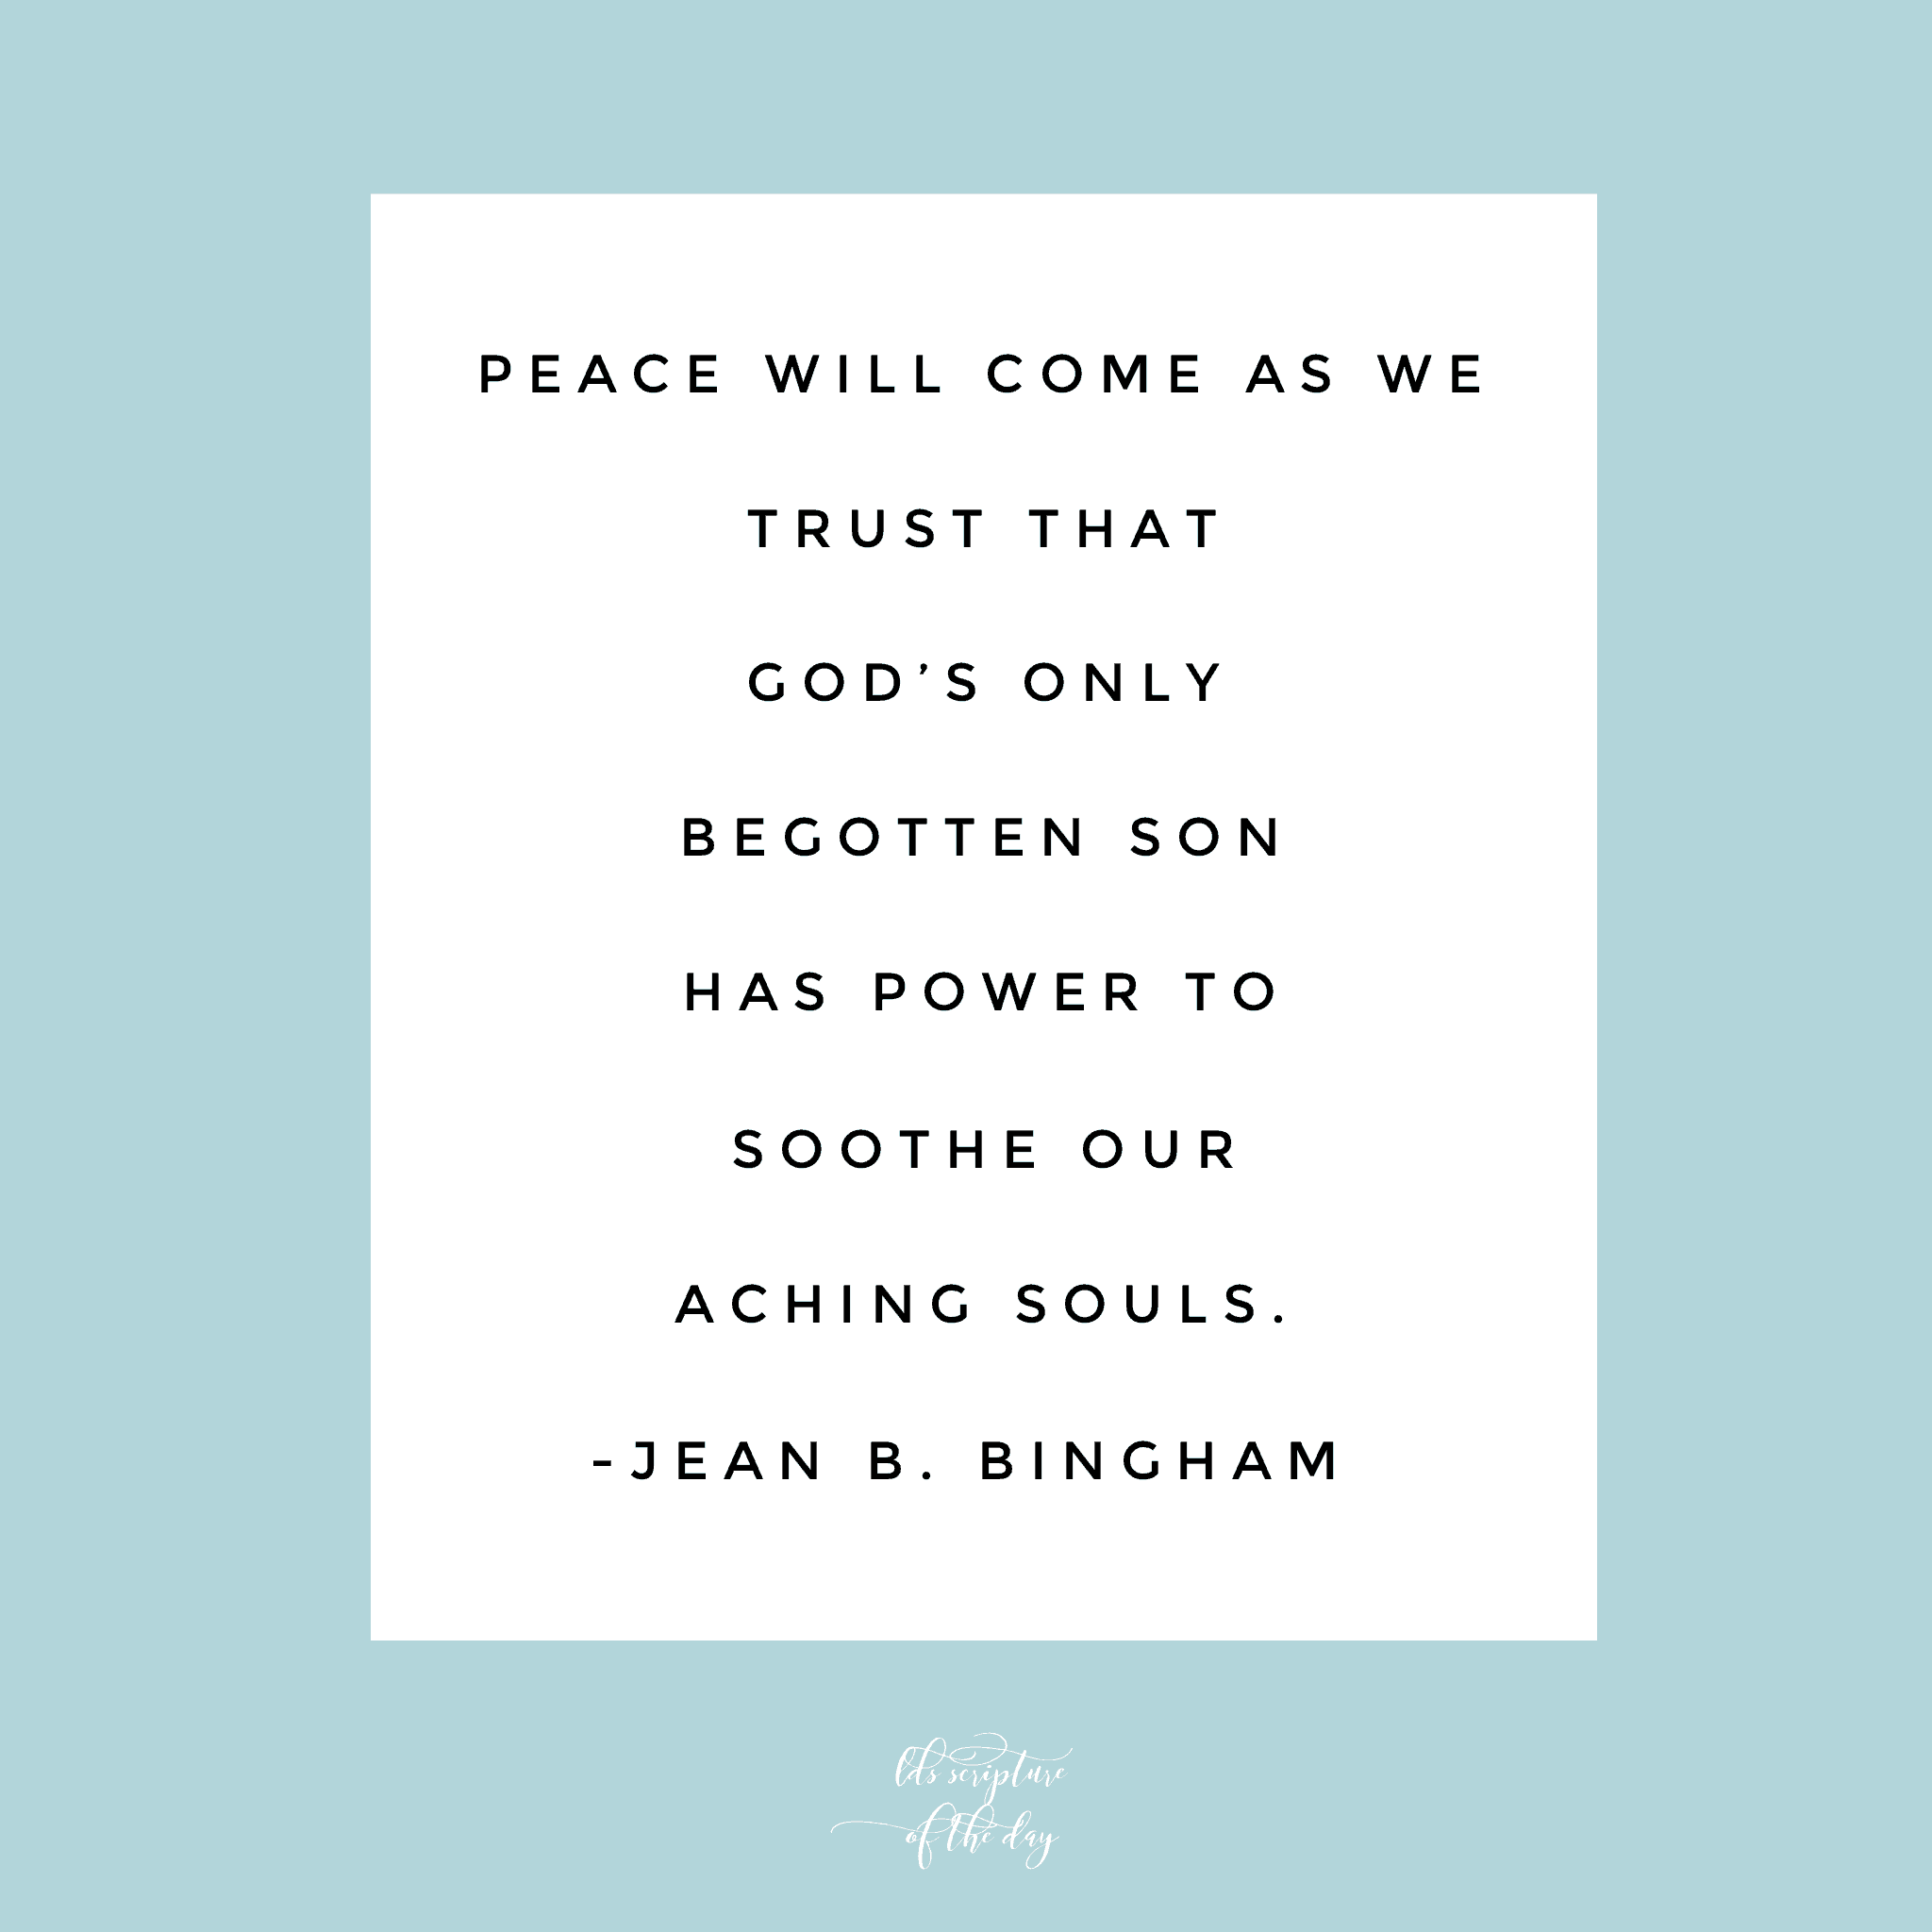 Peace will come as we trust that God's Only Begotten Son has power to soothe our aching souls. —Jean B. Bingham